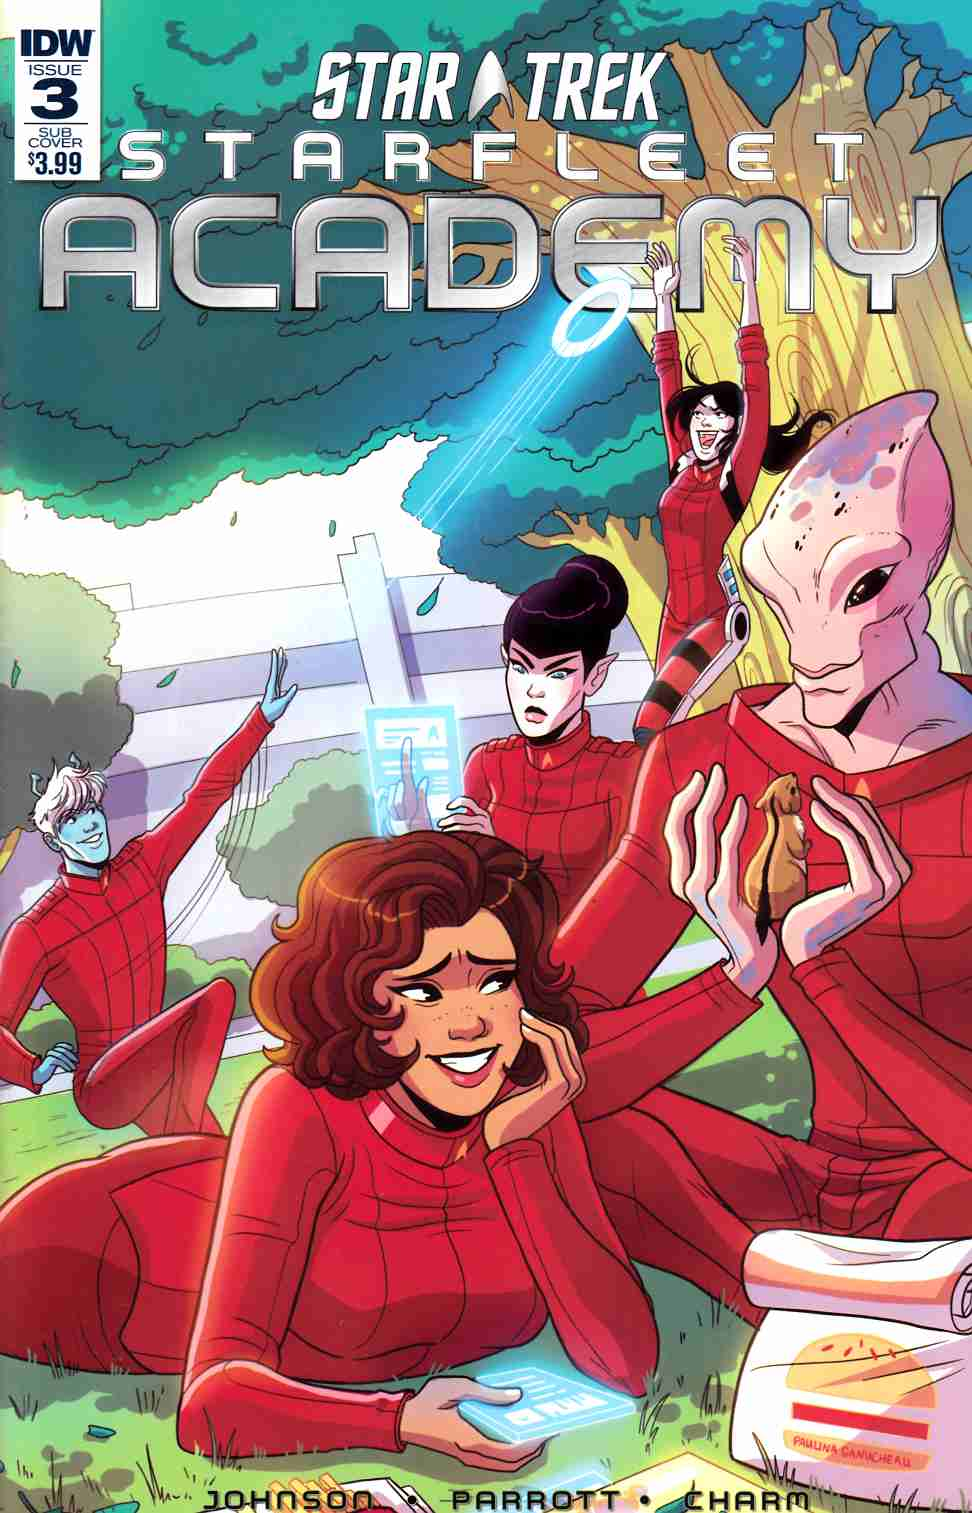 Star Trek Starfleet Academy #3 Subscription Cover [IDW Comic] THUMBNAIL